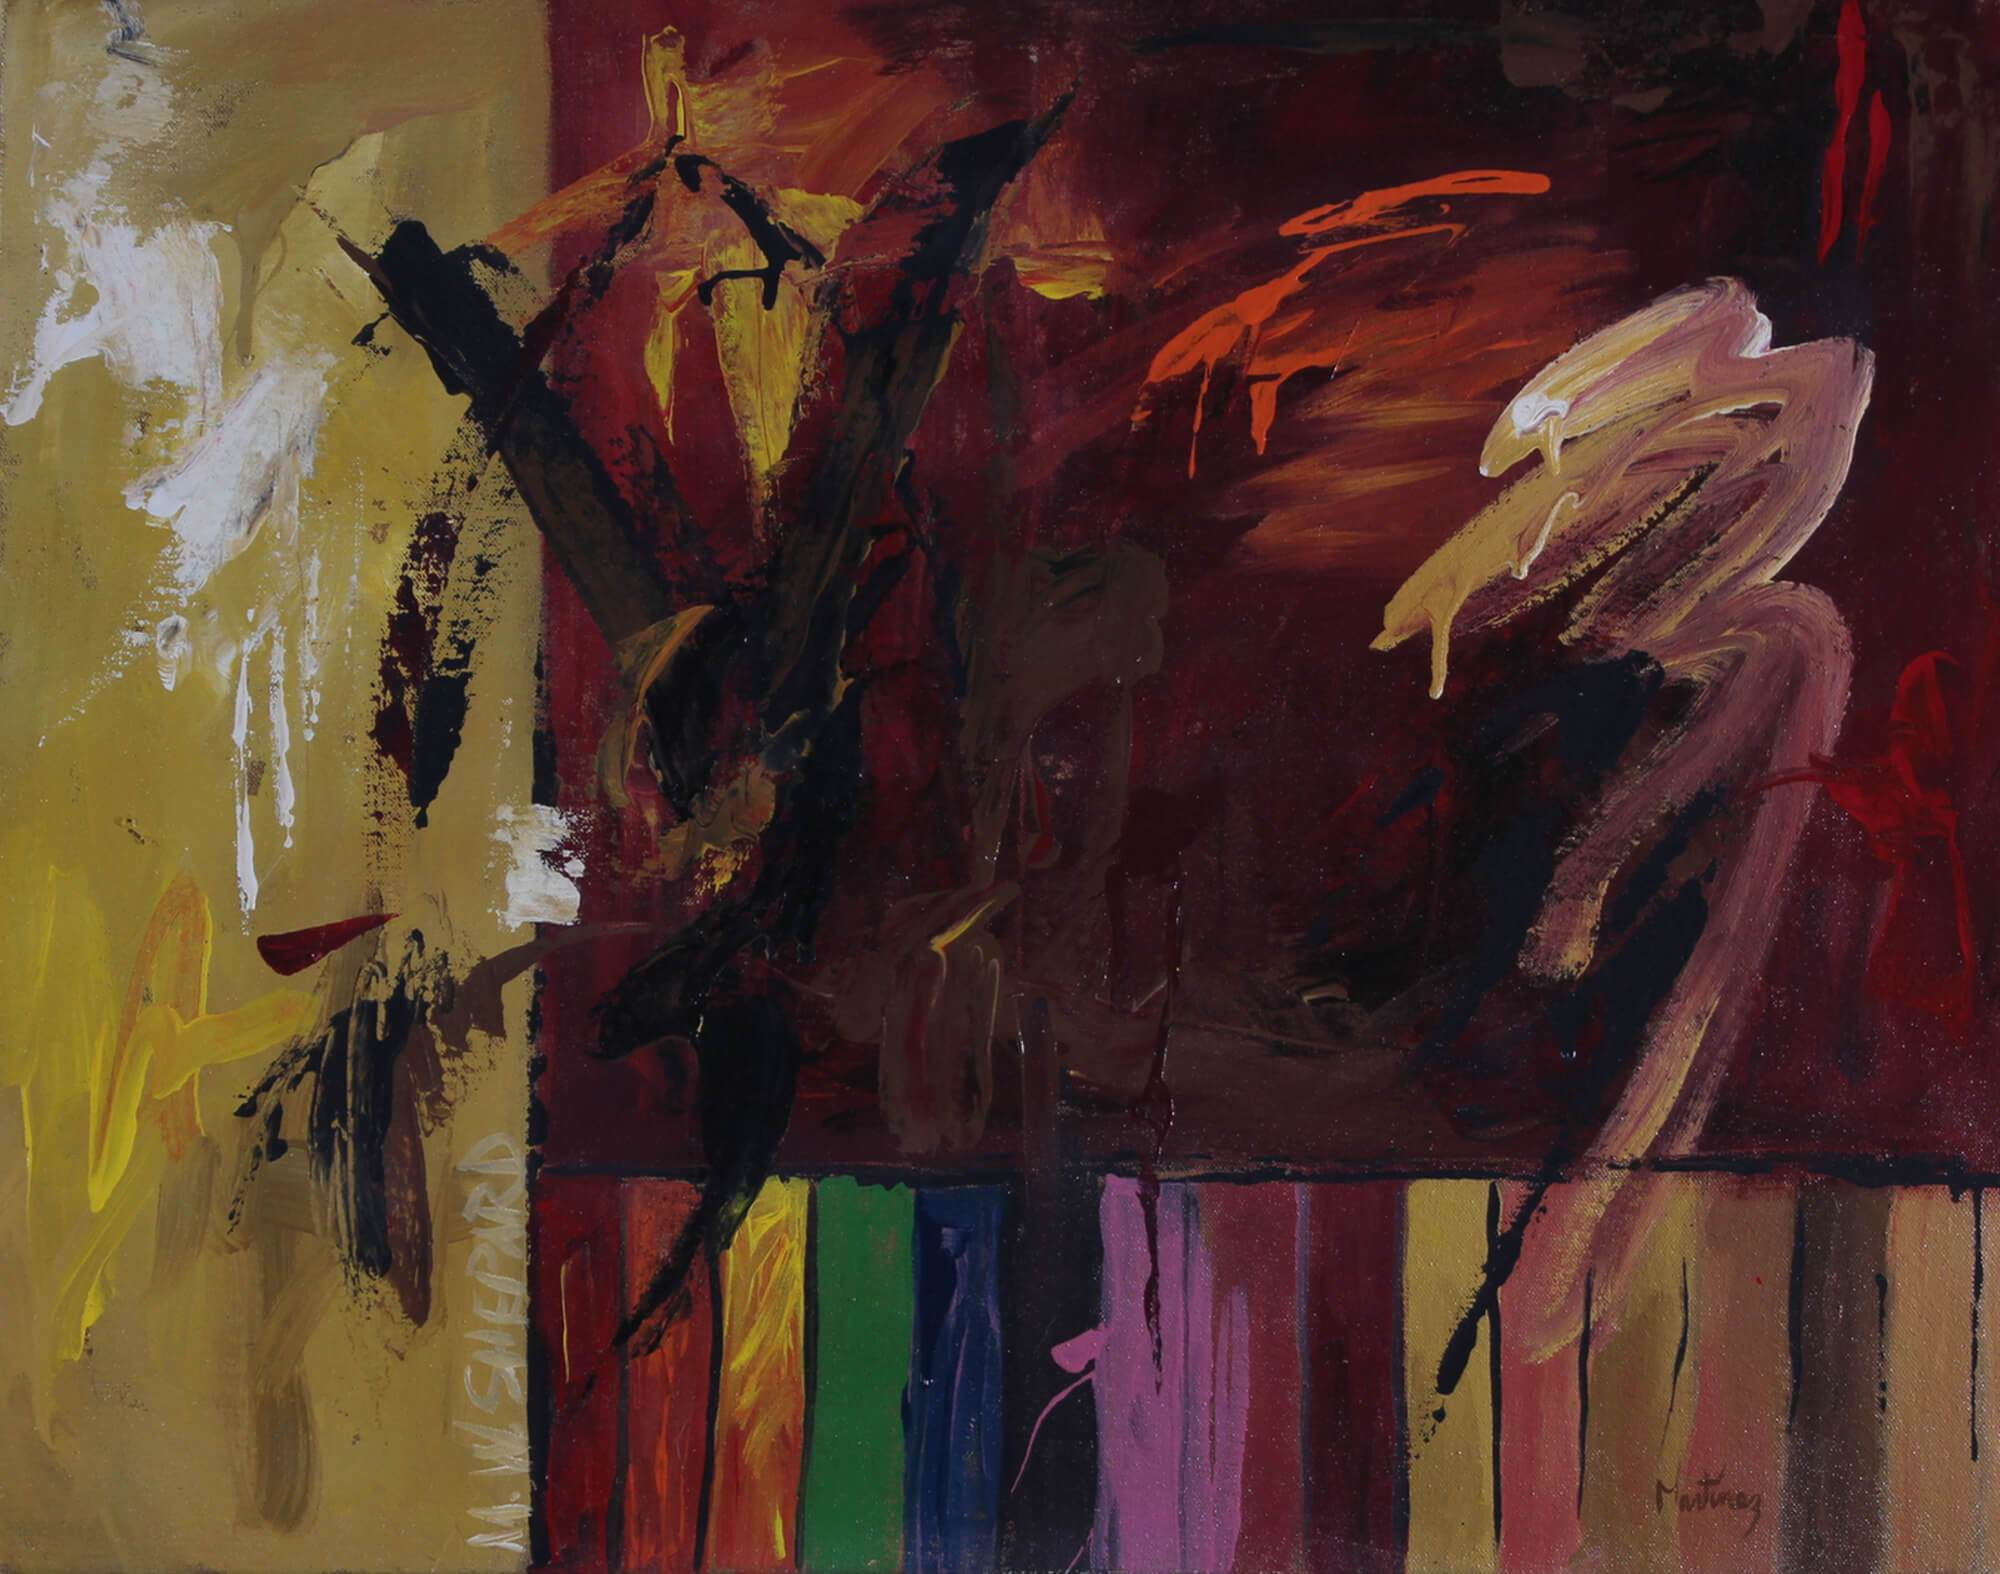 Abstract acrylic painting of a representation of the murder of Mathew W. Shepard in Laramie, Wyoming, in 1998, a critique on homophobia by Joe Martínez.